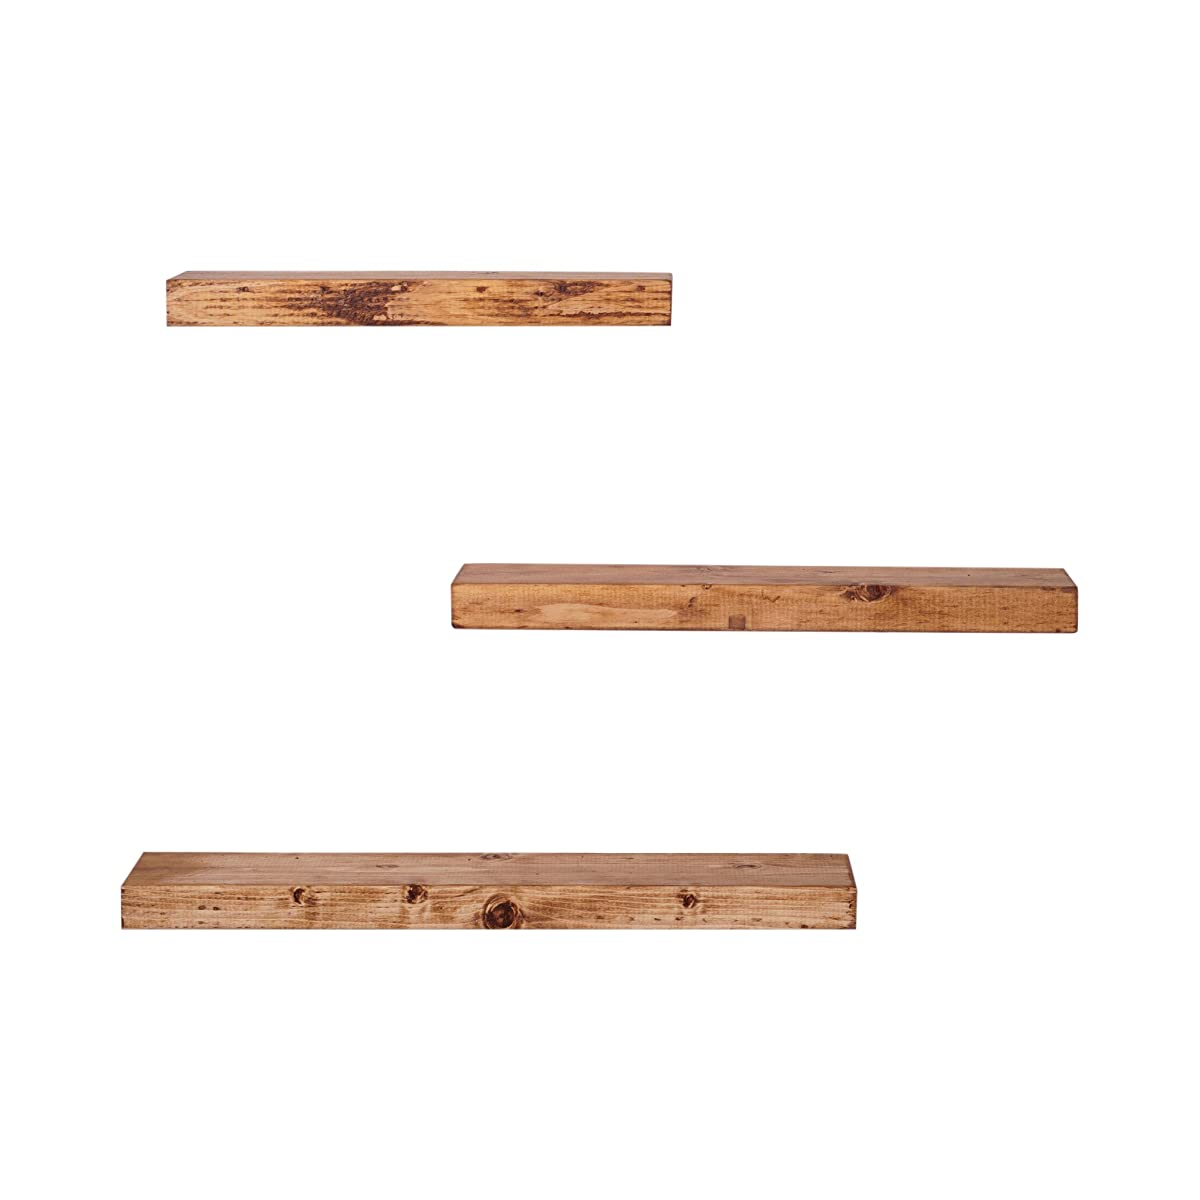 DAKODA LOVE Handmade Rustic Pine Wood Floating Shelves Set of 3 (Walnut)